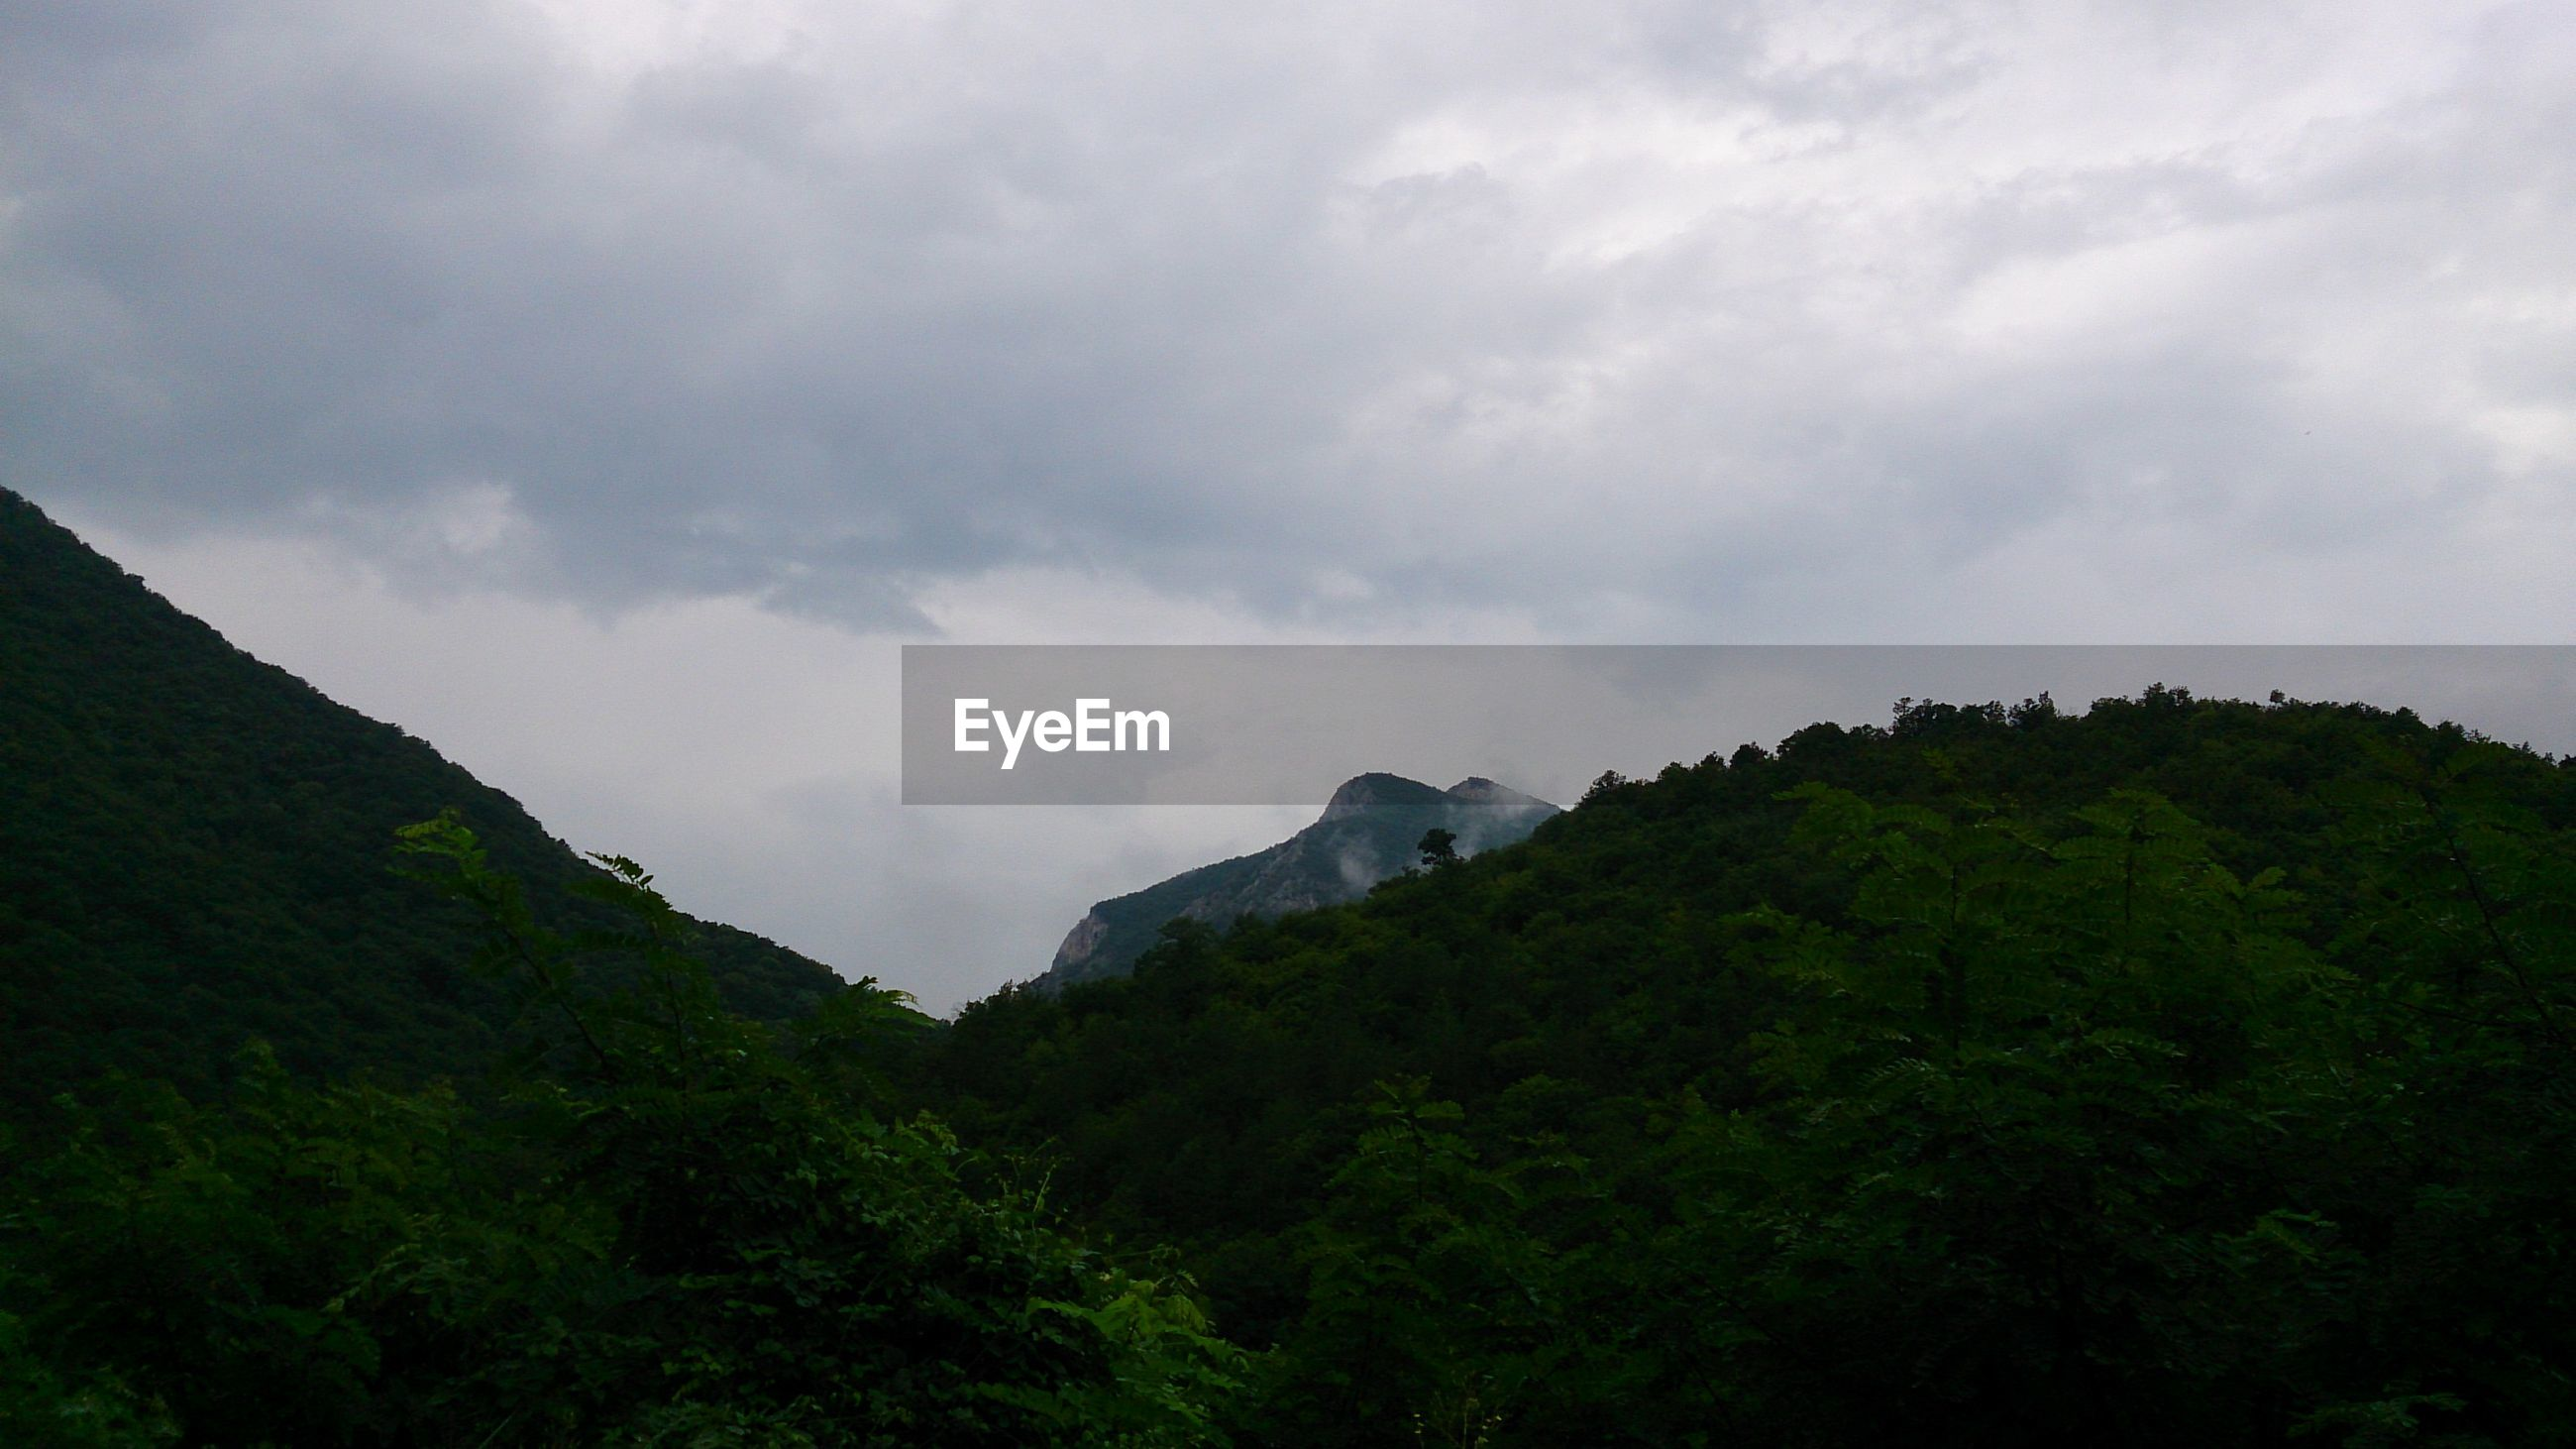 mountain, sky, tranquil scene, tranquility, scenics, tree, beauty in nature, nature, cloud - sky, low angle view, growth, green color, landscape, non-urban scene, cloudy, mountain range, idyllic, cloud, day, outdoors